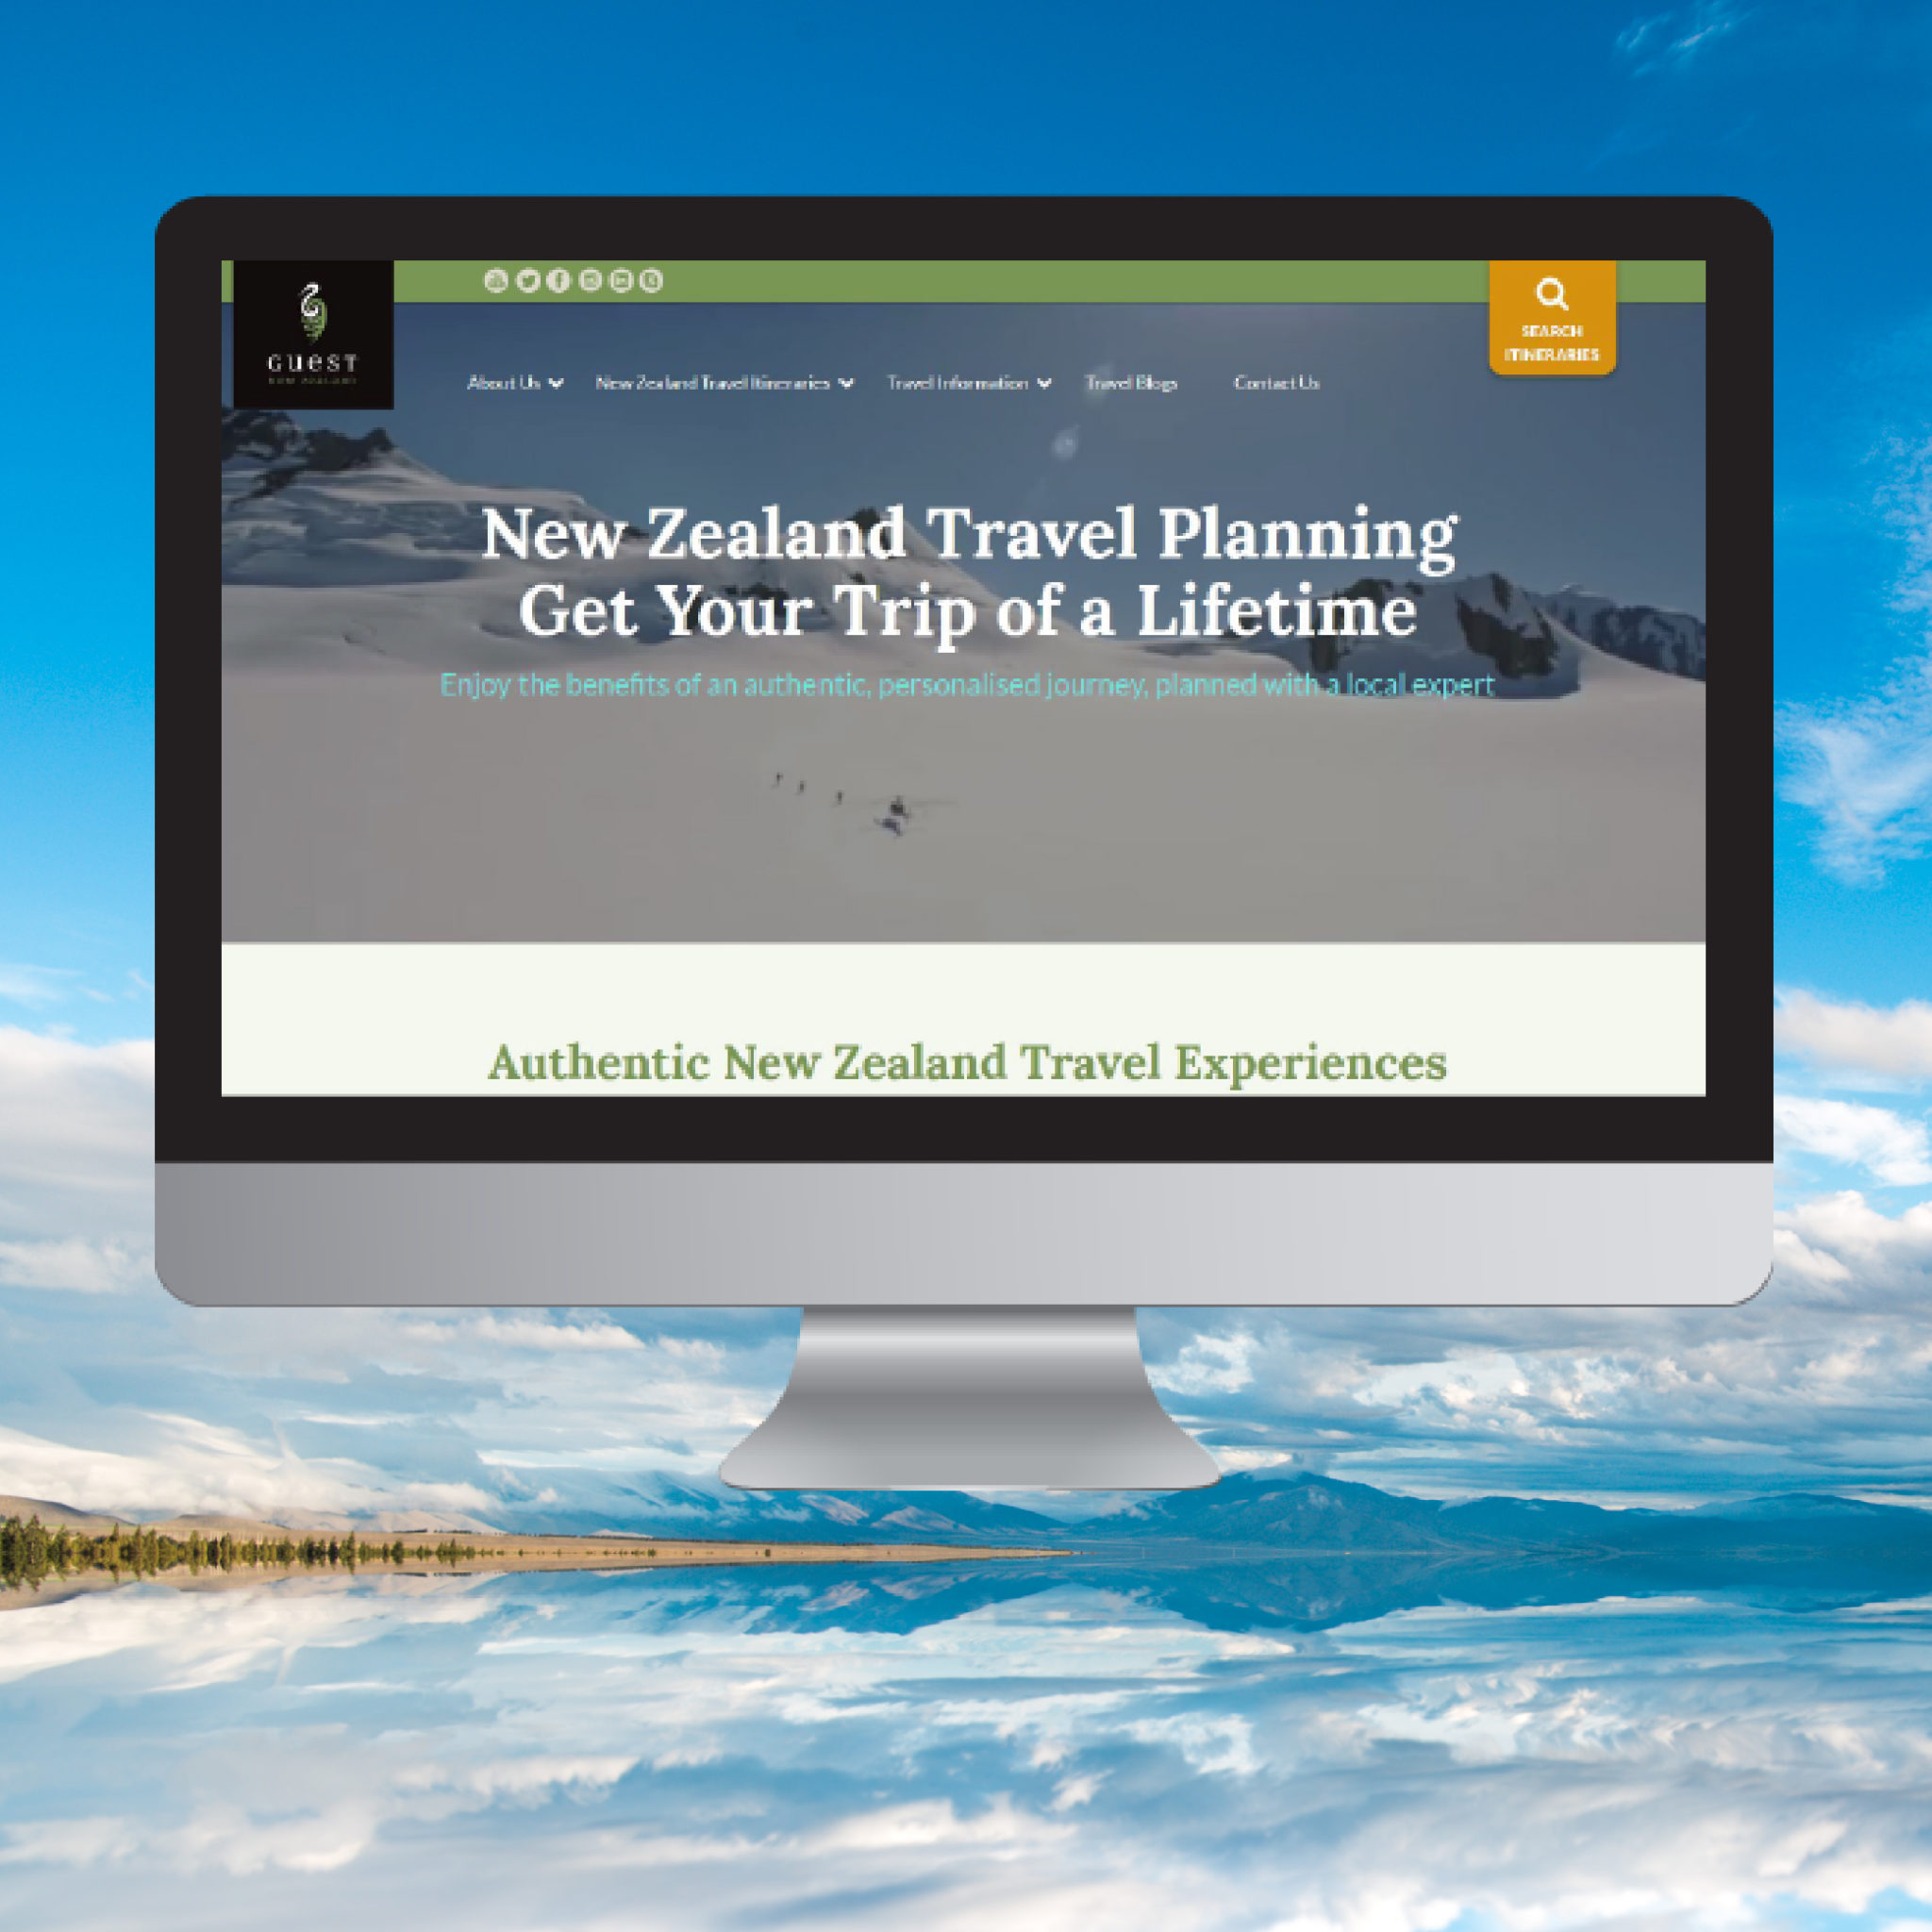 Guest NZ Website Editing